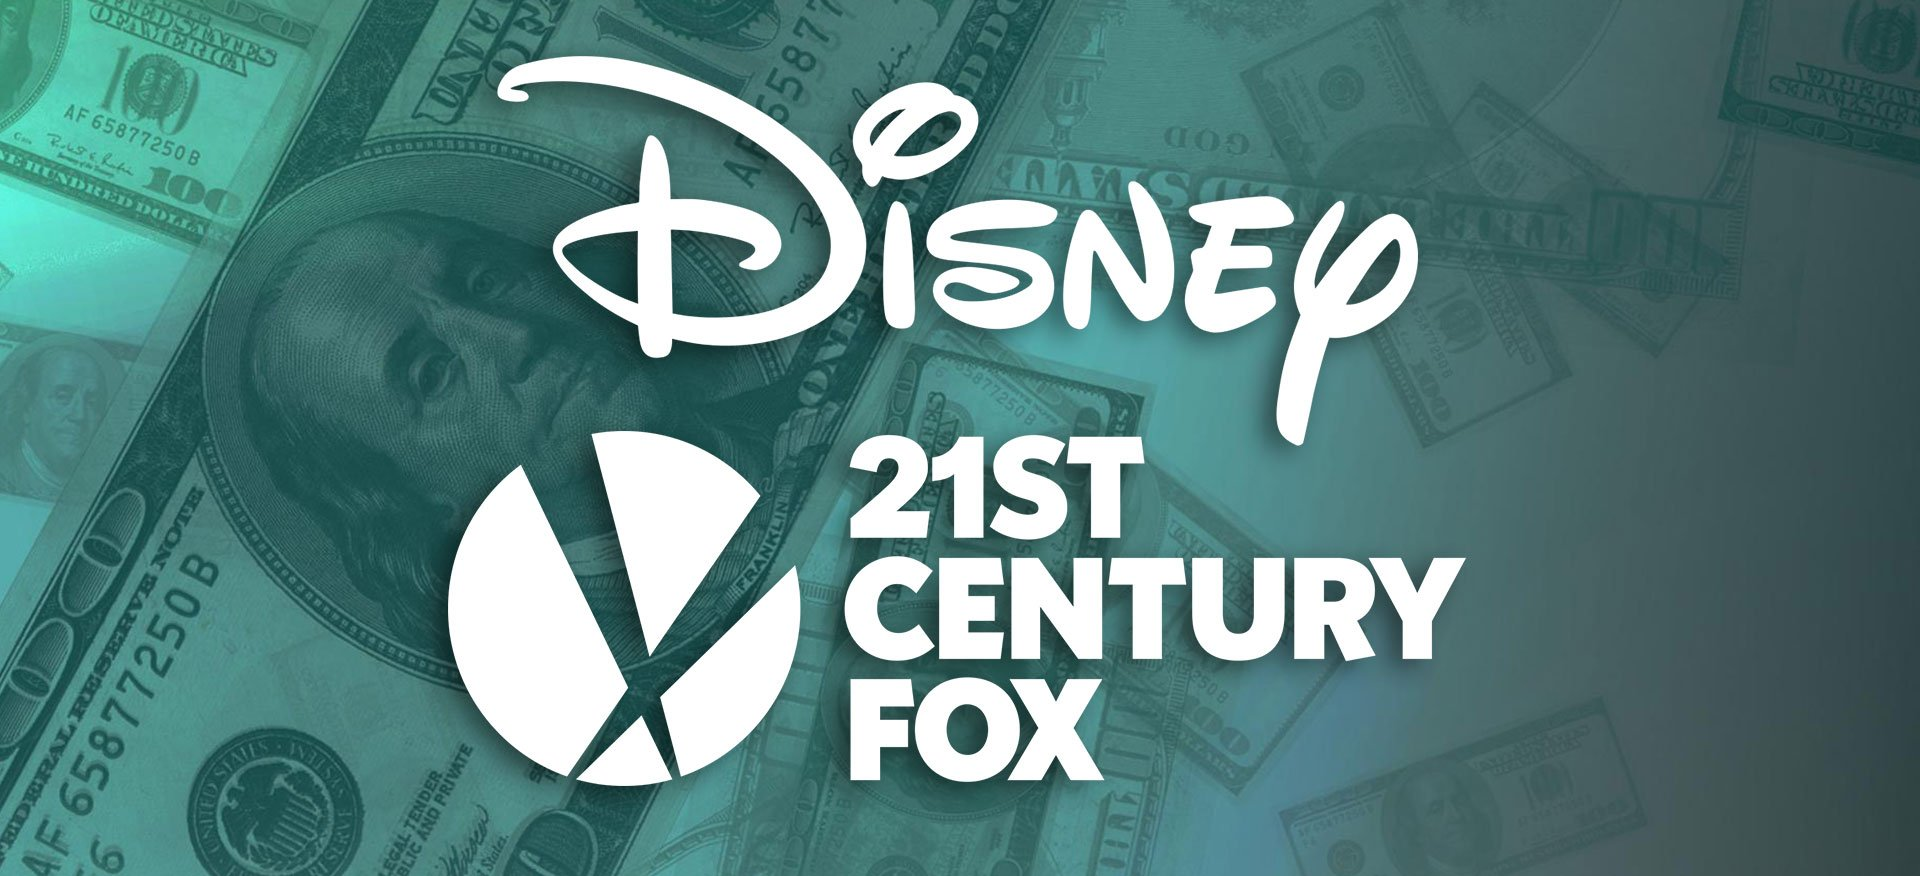 disney, fox, comcast, anlasma, marvel qehremanlari fox, x-men fox, deadpool